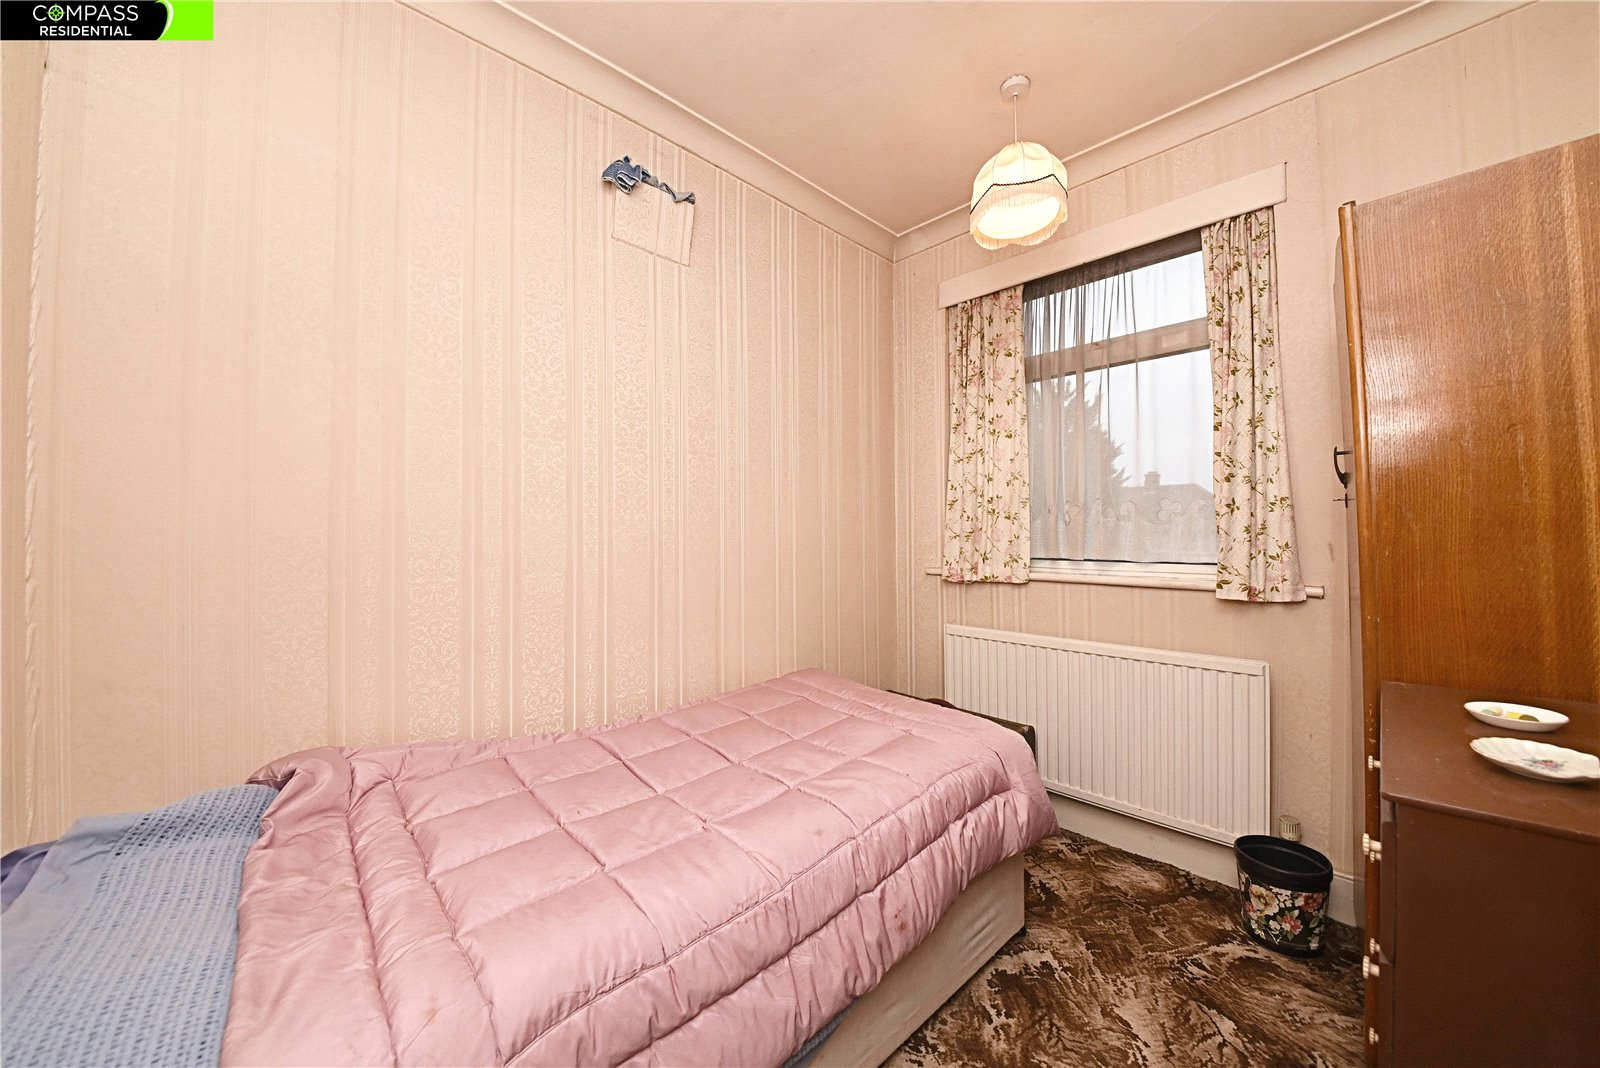 3 bed house for sale in Whetstone, N20 9PT  - Property Image 12